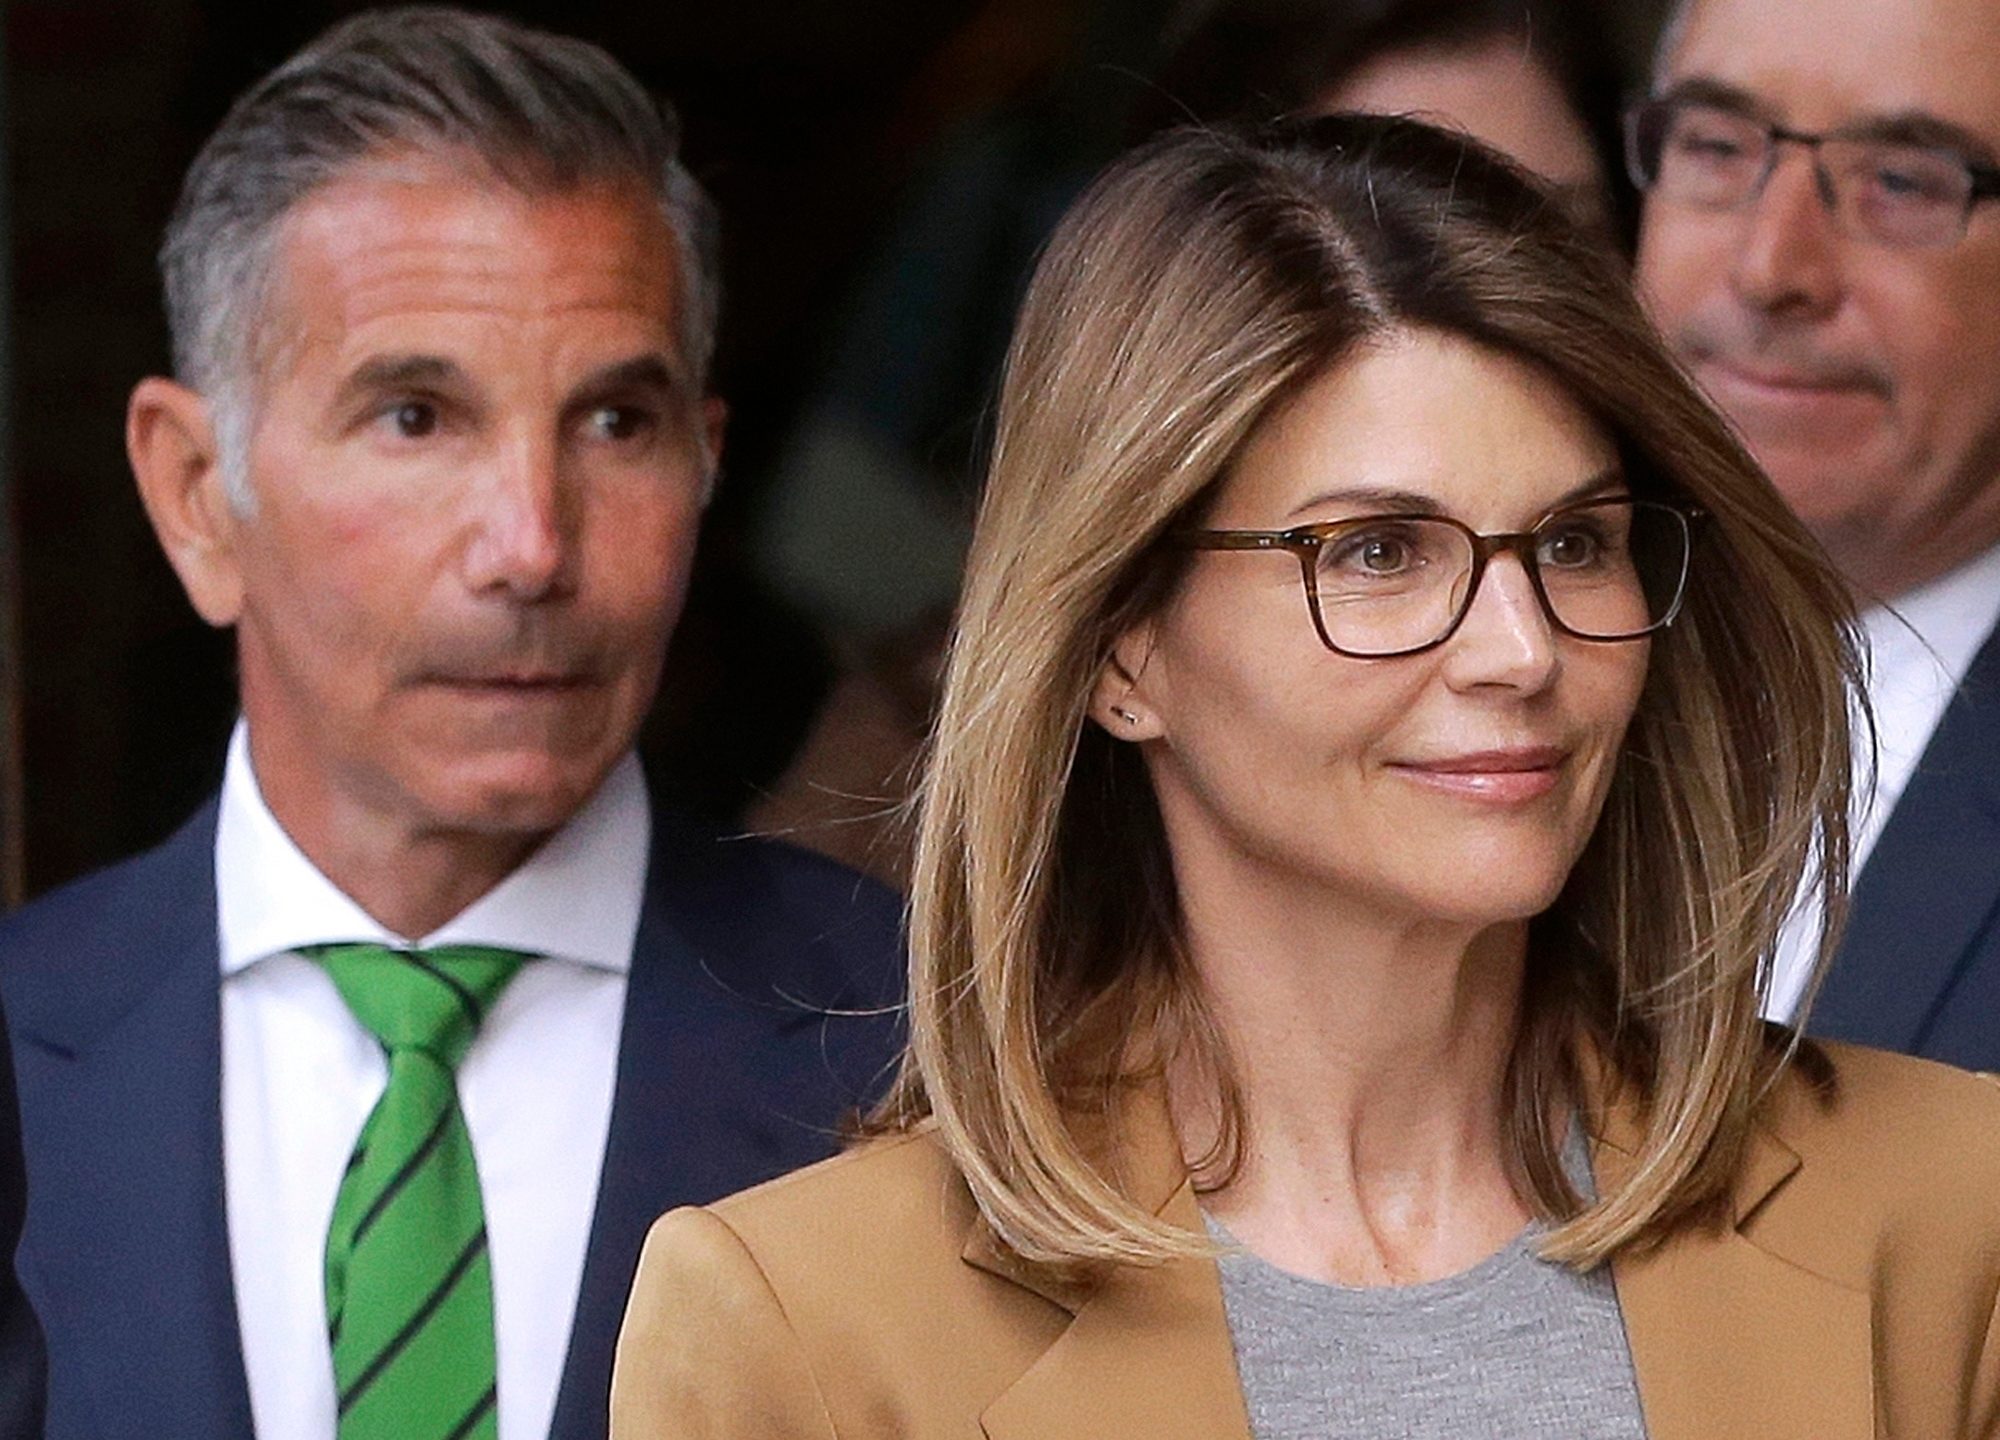 Lori Loughlin, Mossimo Giannulli